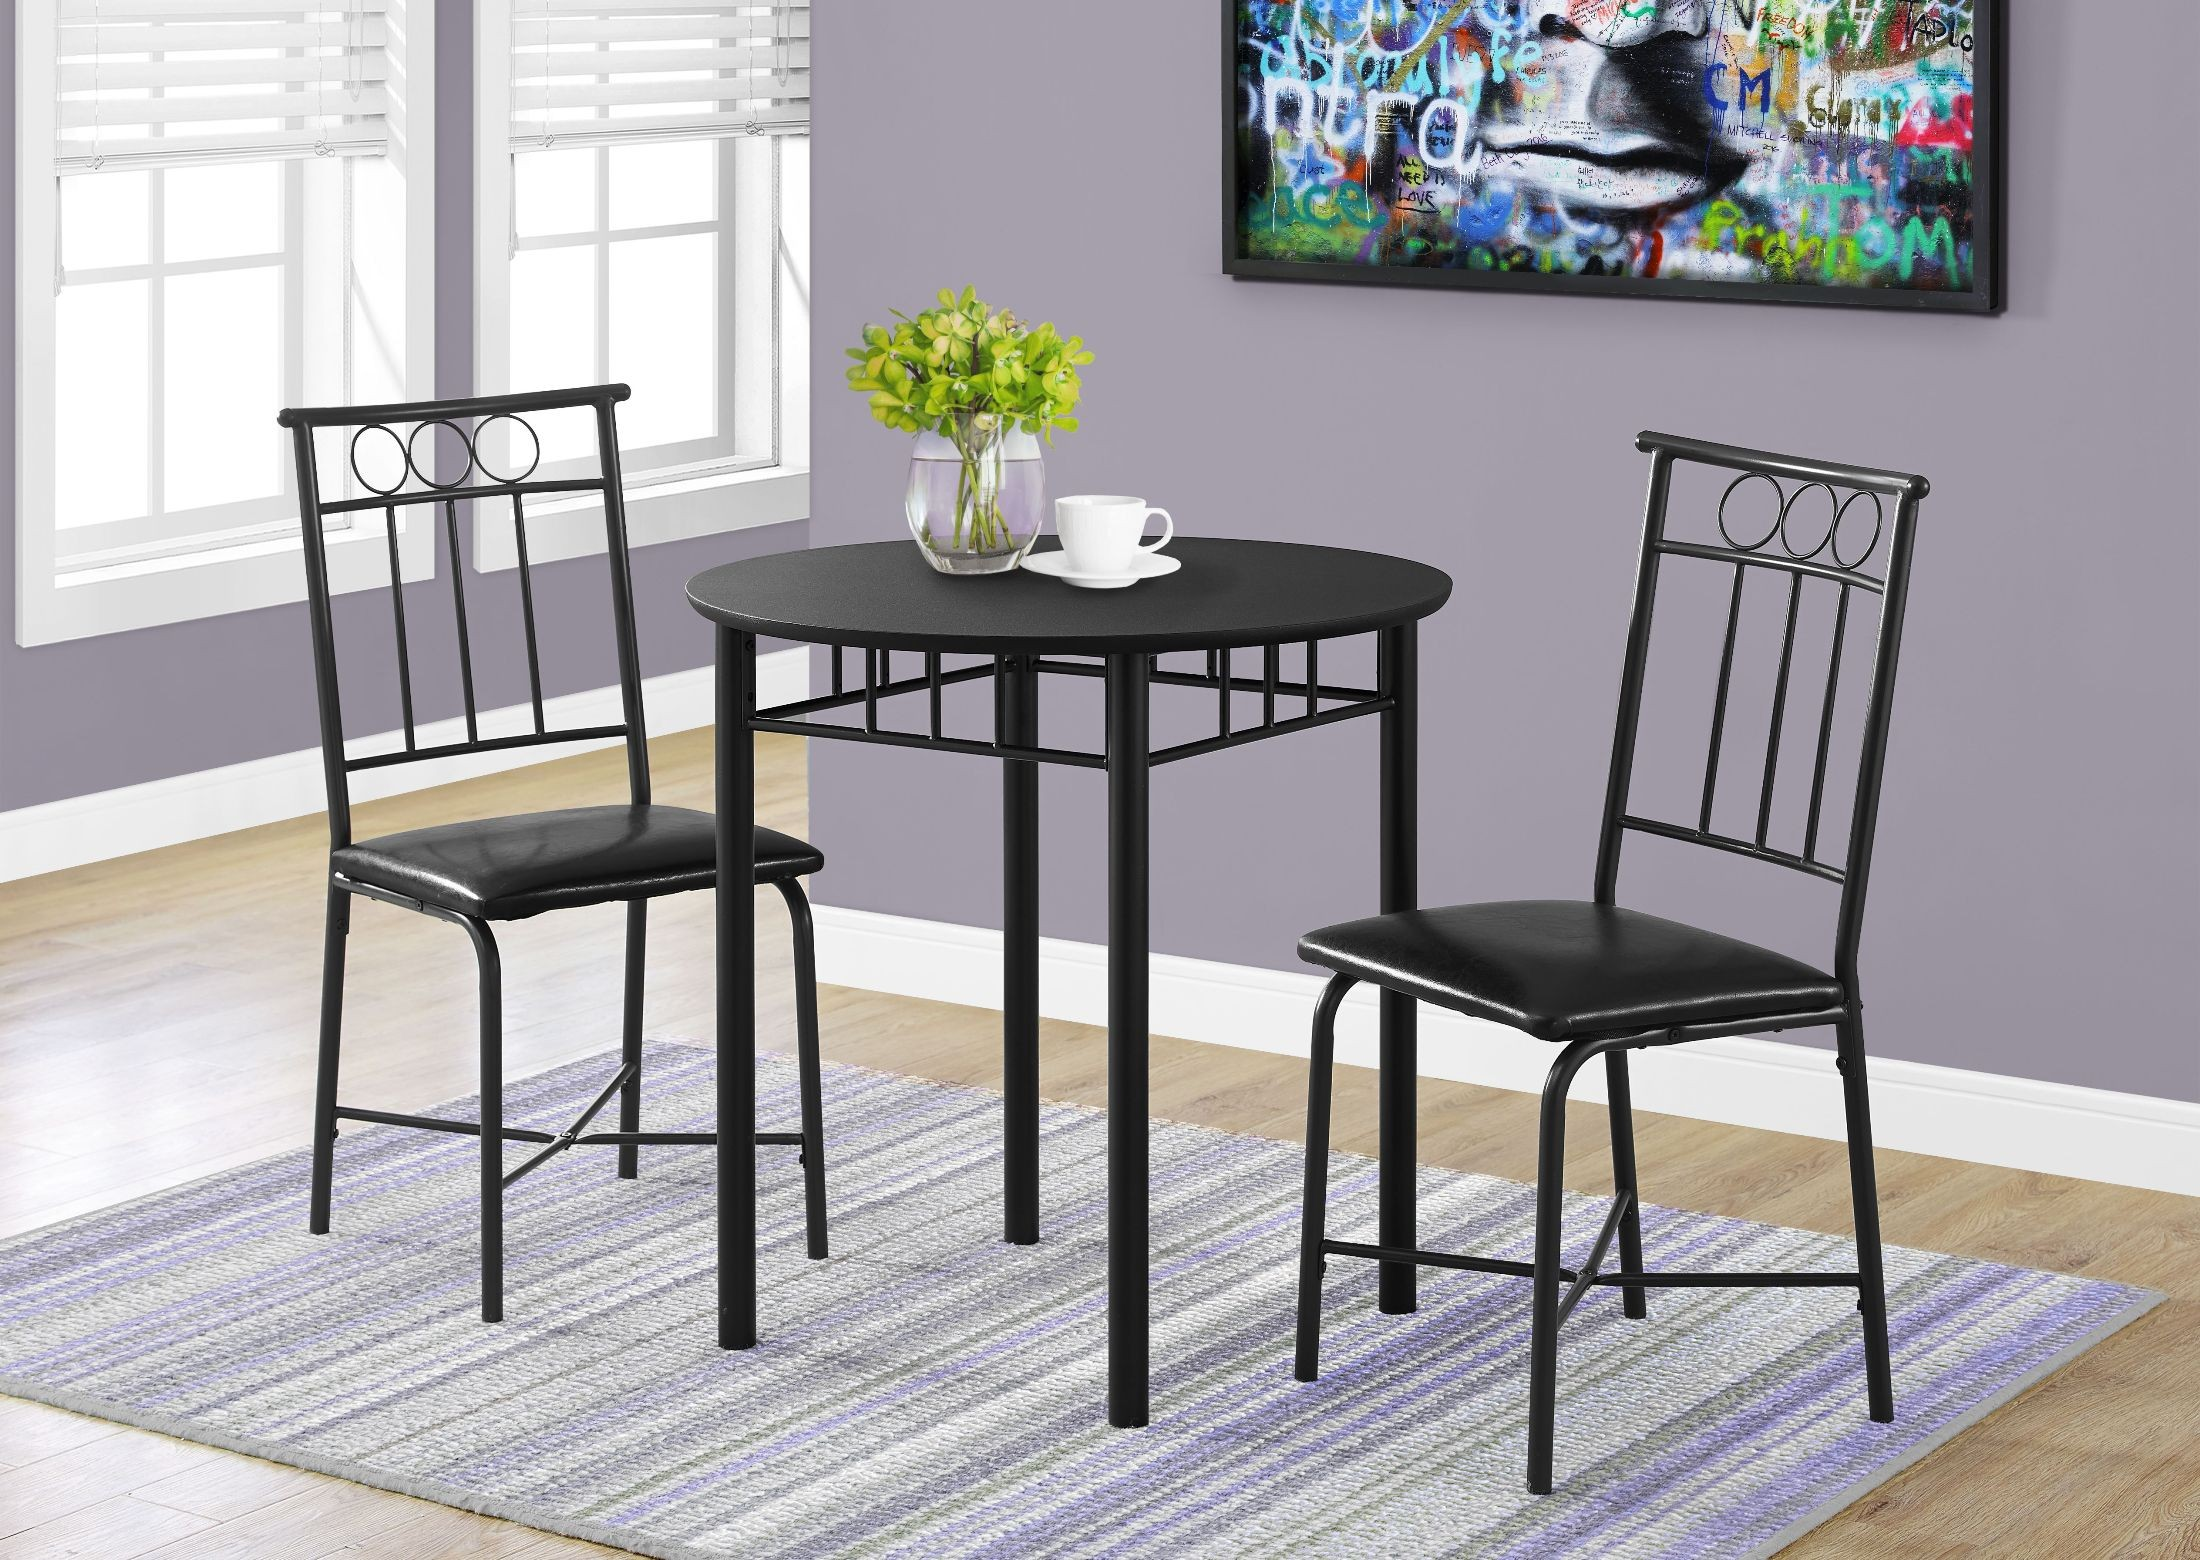 metal dining room sets | Black Metal 3 Piece Dining Room Set, 1013, Monarch